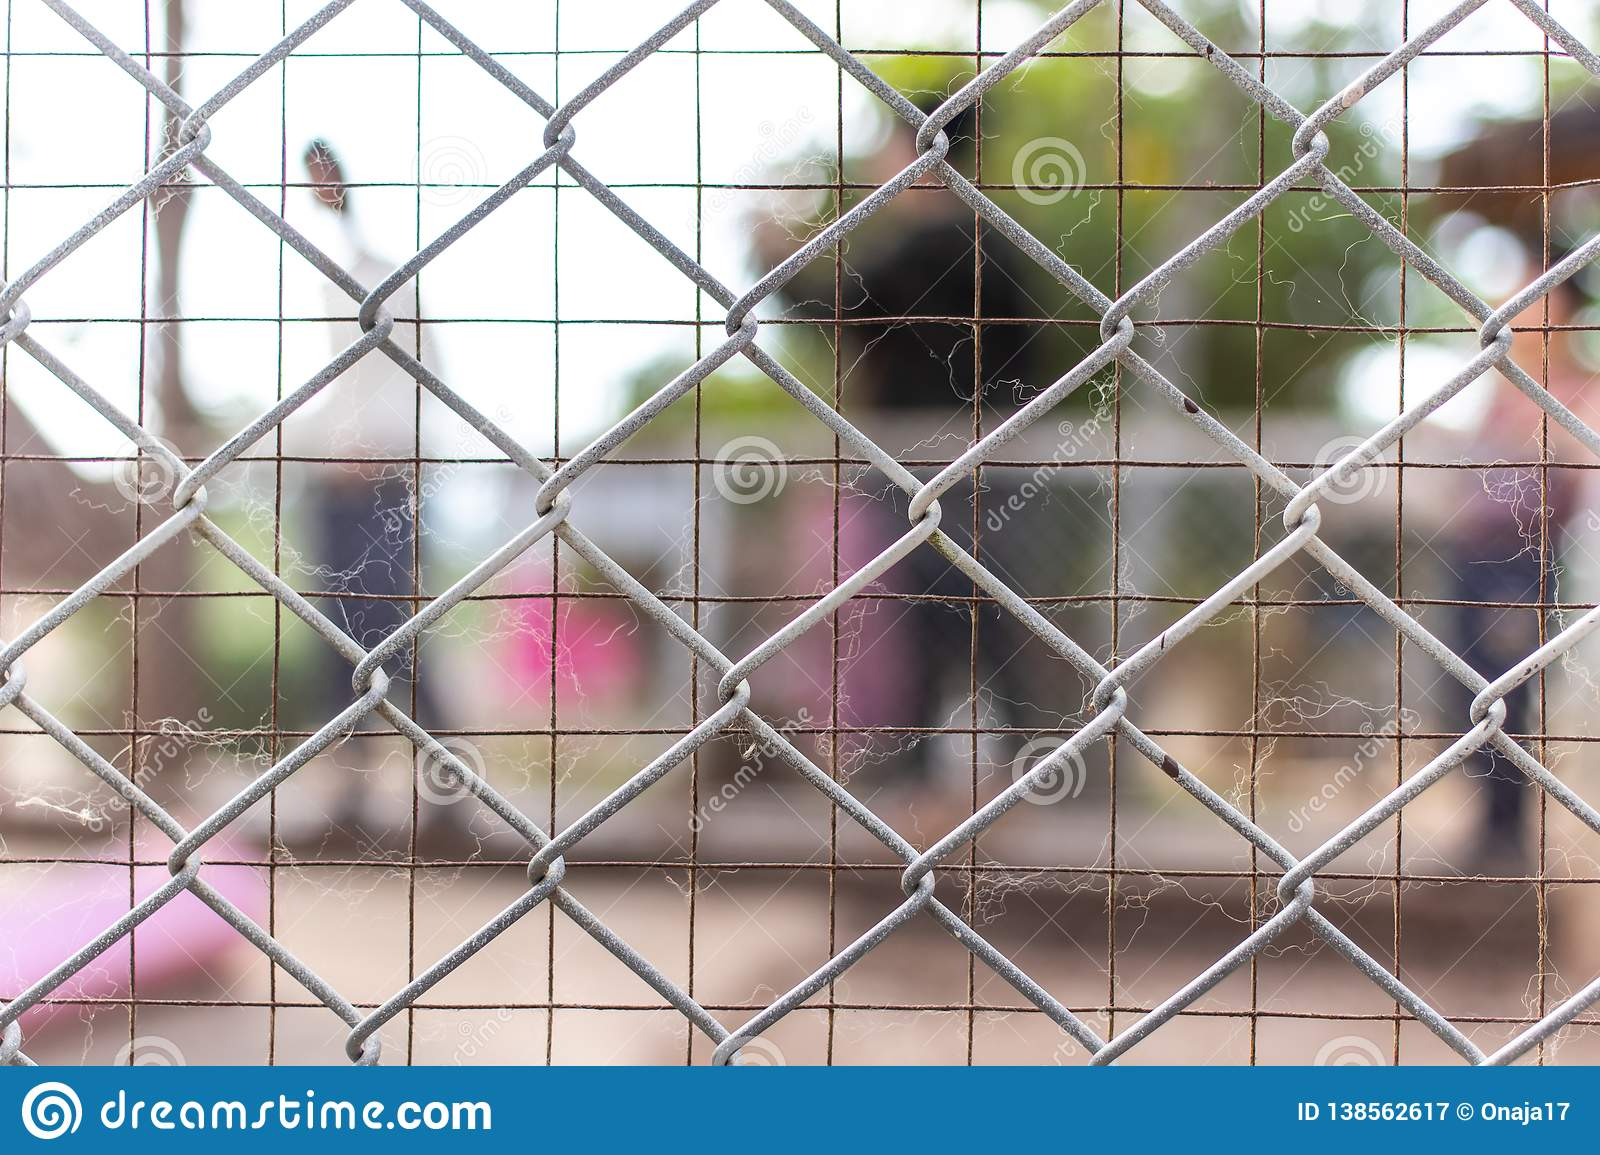 Abstract background, chain-link fencing